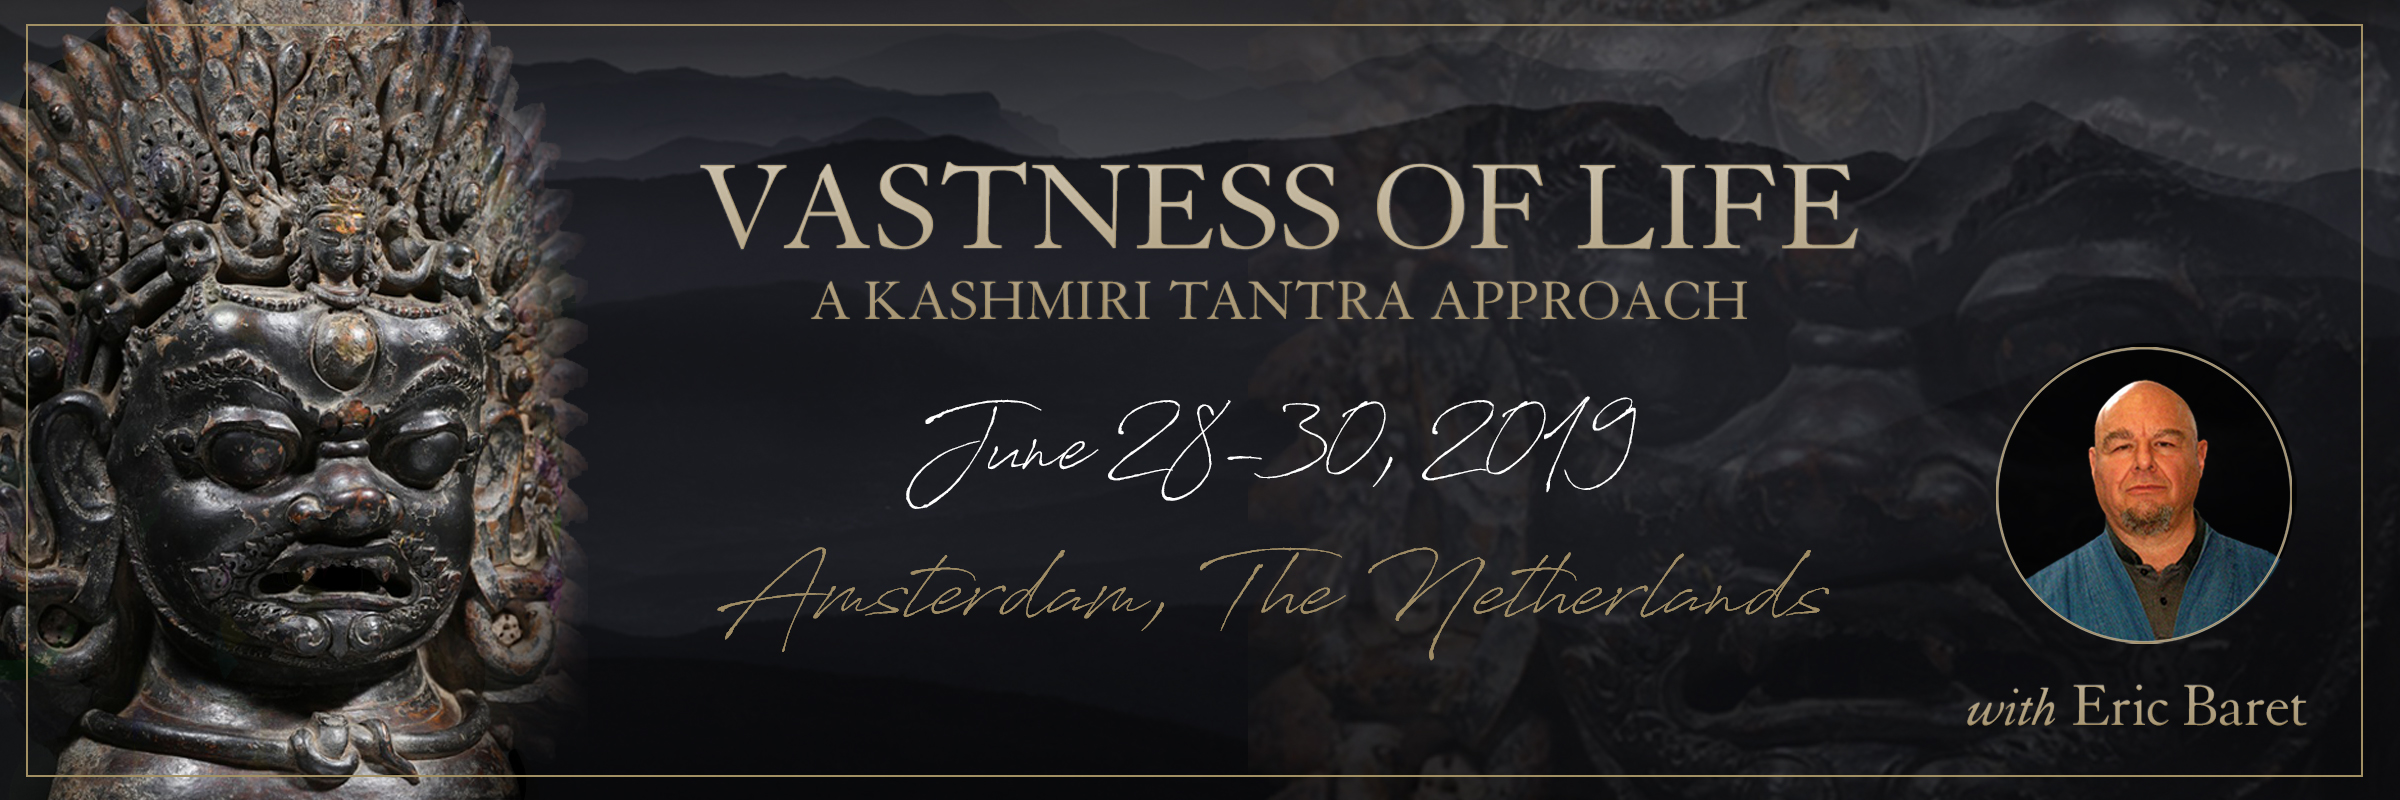 Exploring Life Through Kashmiri Tantric Shaivism